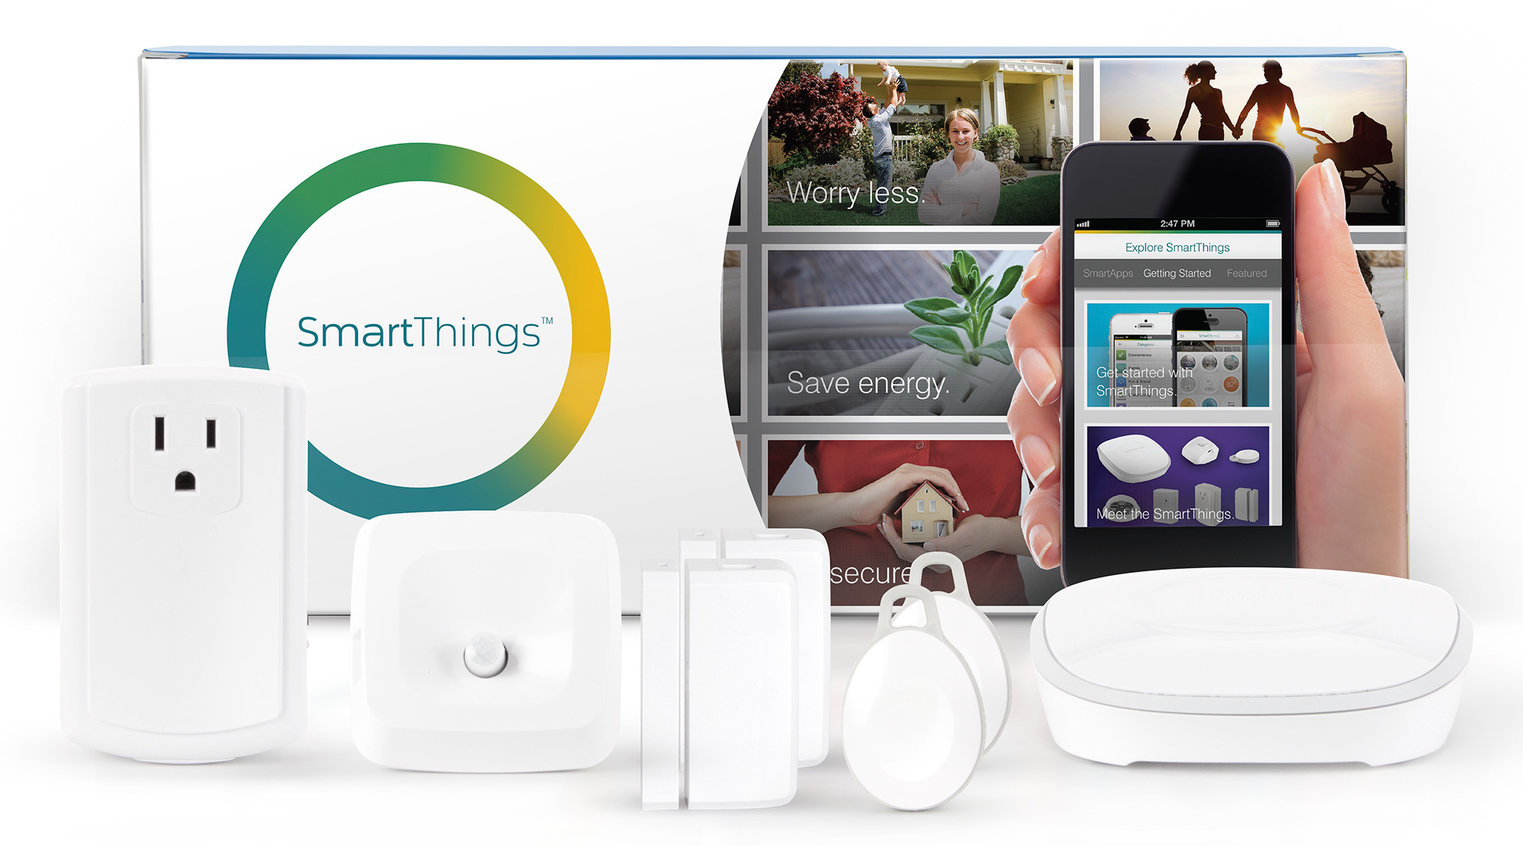 Works as a SmartThings hub to connect your devices wirelessly and make them work together. Control SmartThings, Samsung, and + compatible smart devices, like lights, cameras, and doorbells, all via the SmartThings app/5(4).